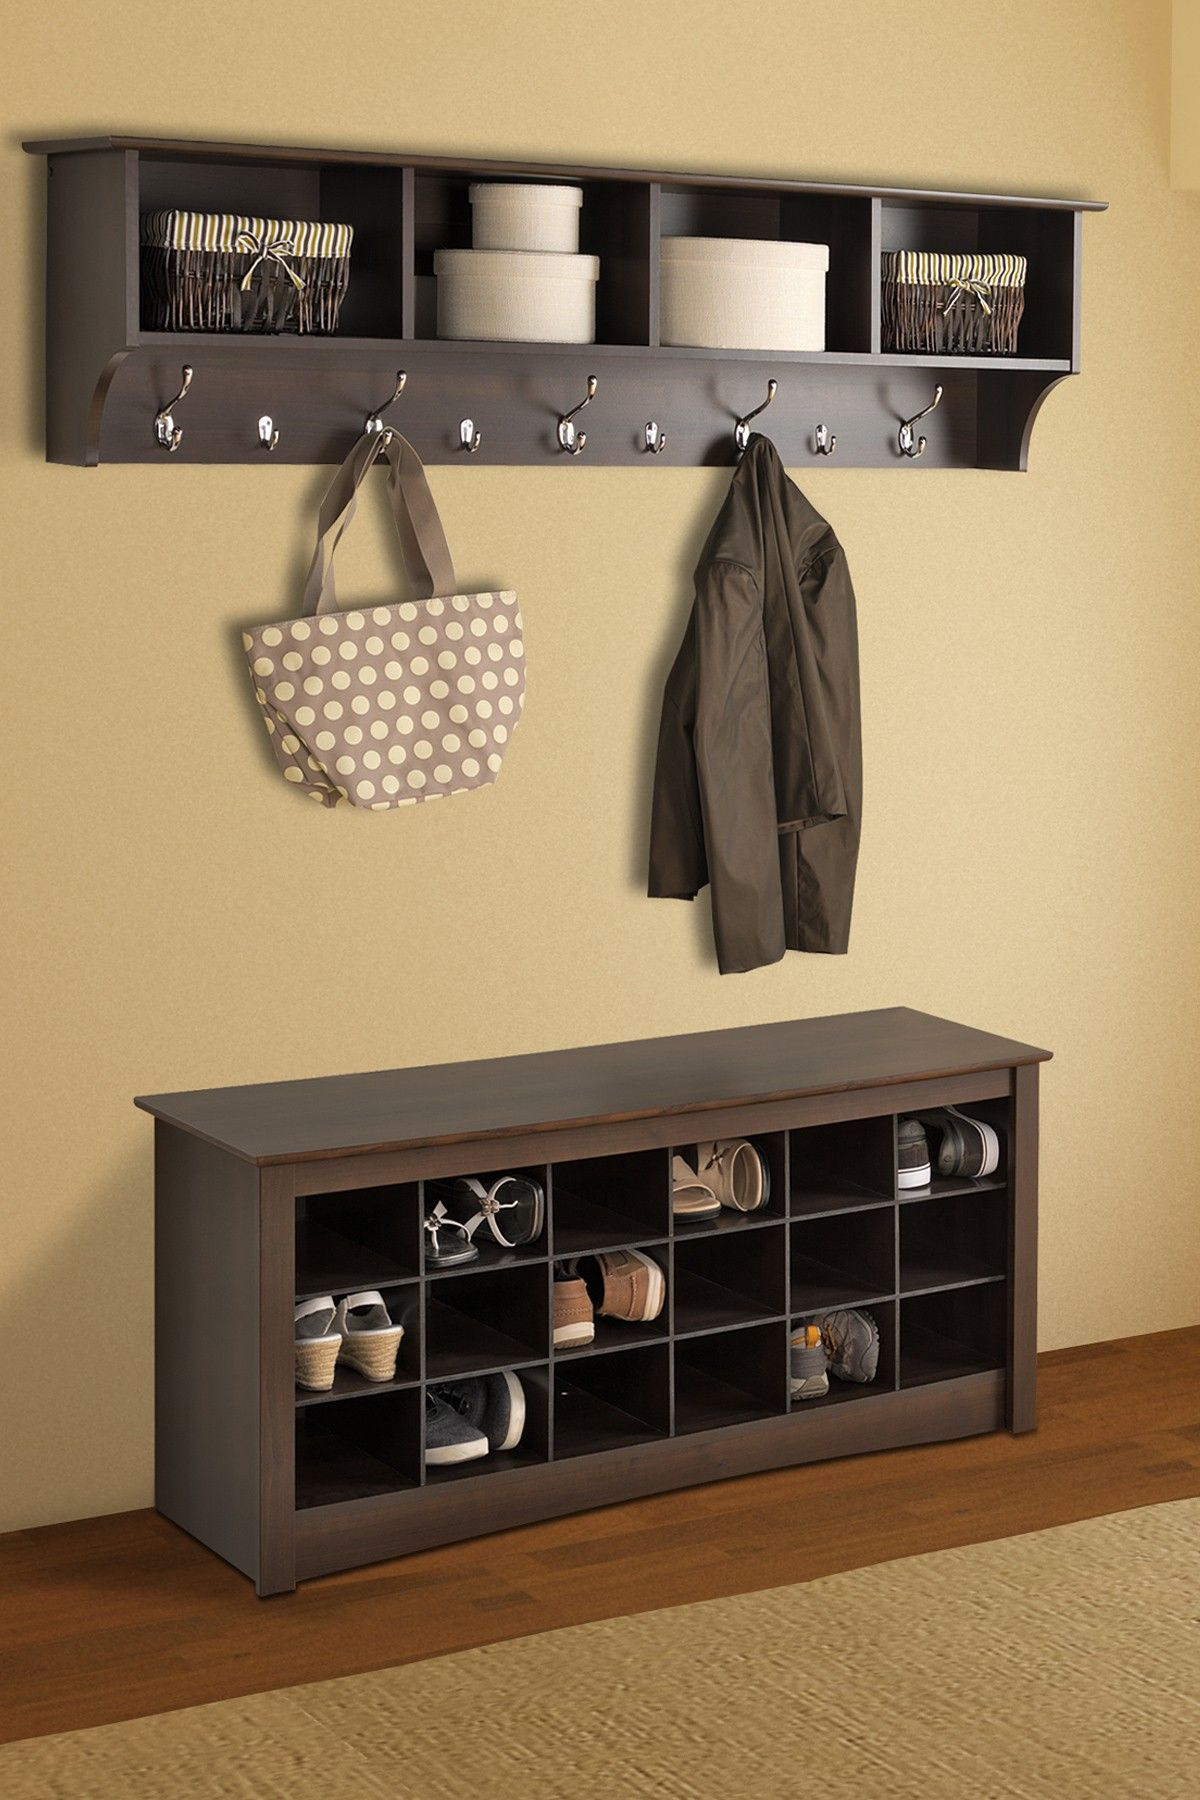 Beau Shoe Storage Espresso Cubbie Bench On HauteLook